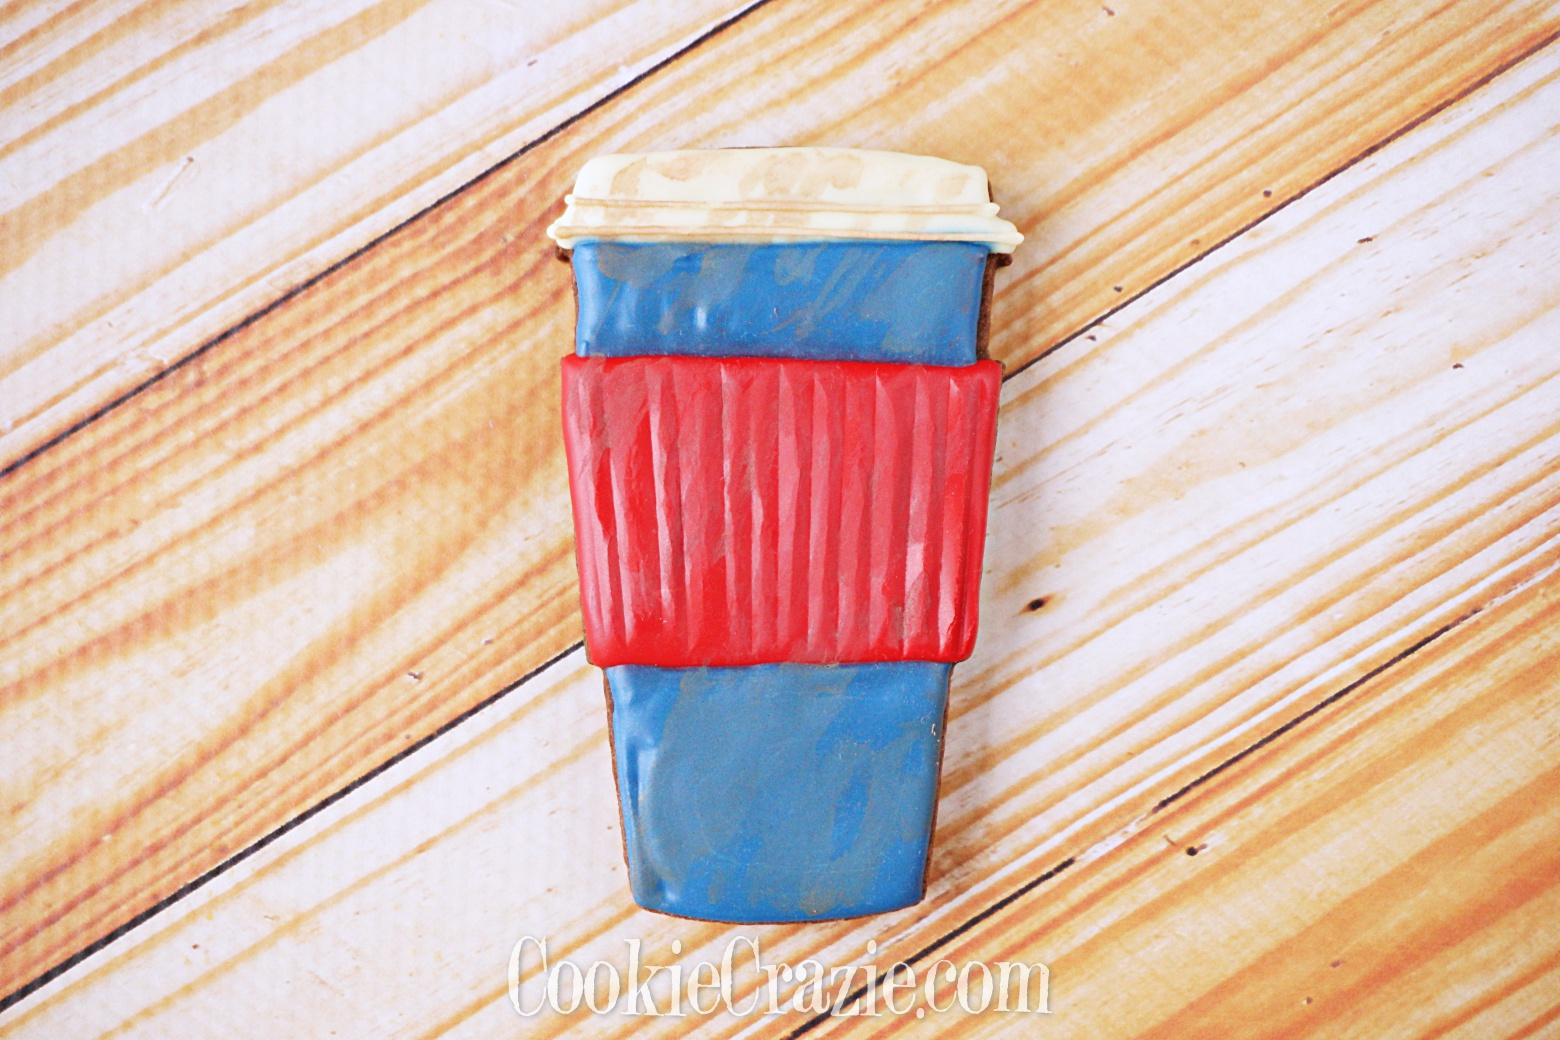 USA Patriotic To-Go Coffee Cup Decorated Sugar Cookie YouTube video  HERE